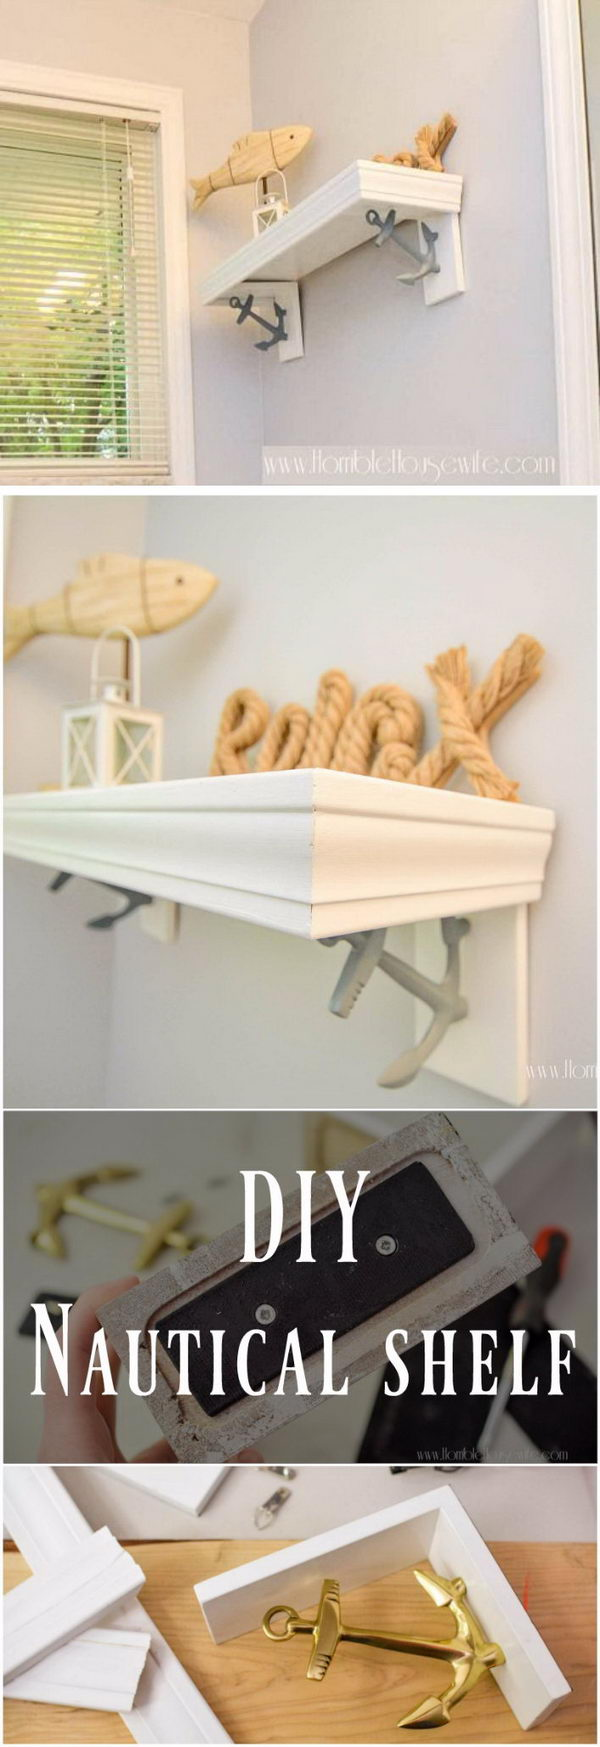 Nautical Bathroom Shelf Using Anchor Bookends.